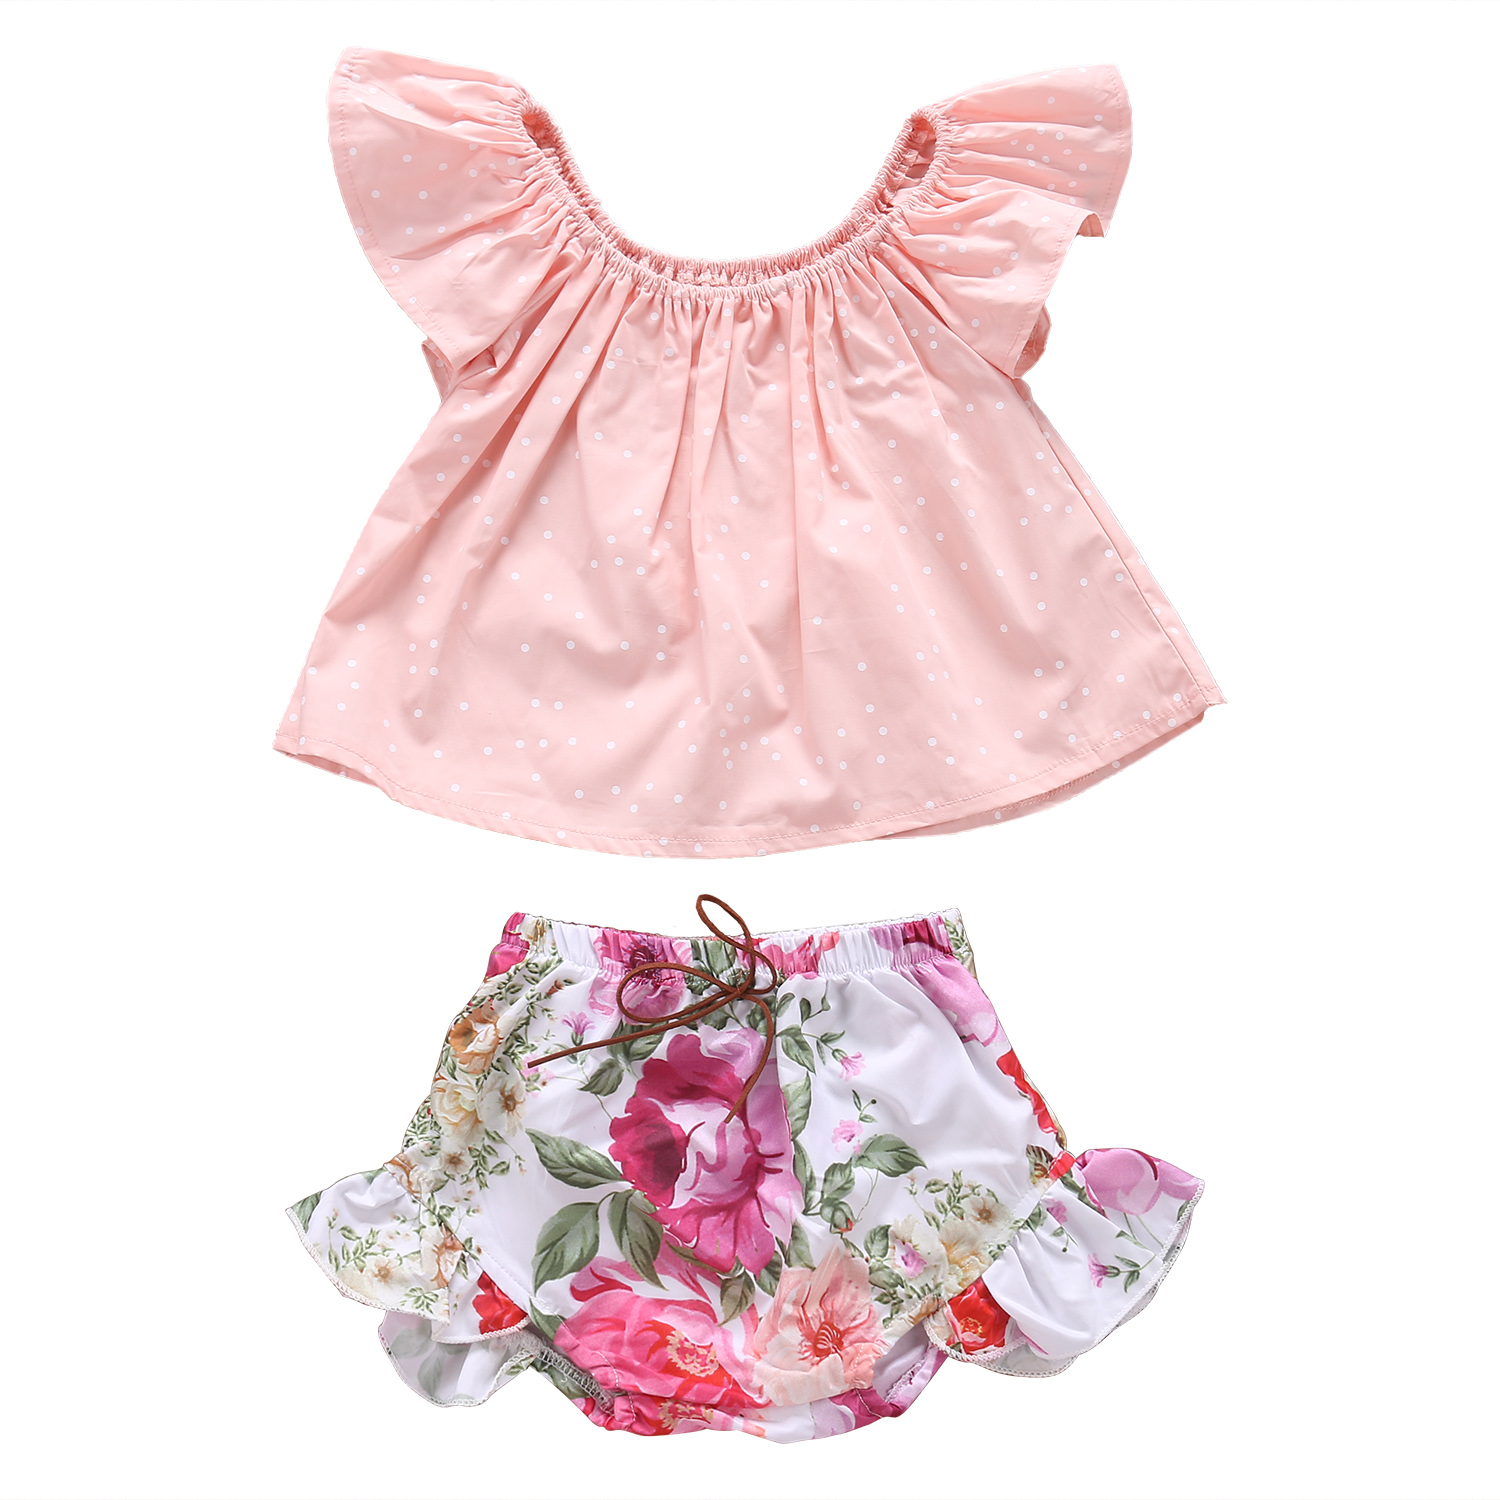 2PCS Toddler Kids Baby Girls Clothes T-shirt Vest Tops Shorts Flower Cute Outfits Clothing Set Baby Girl flower sleeveless vest t shirt tops vest shorts pants outfit girl clothes set 2pcs baby children girls kids clothing bow knot